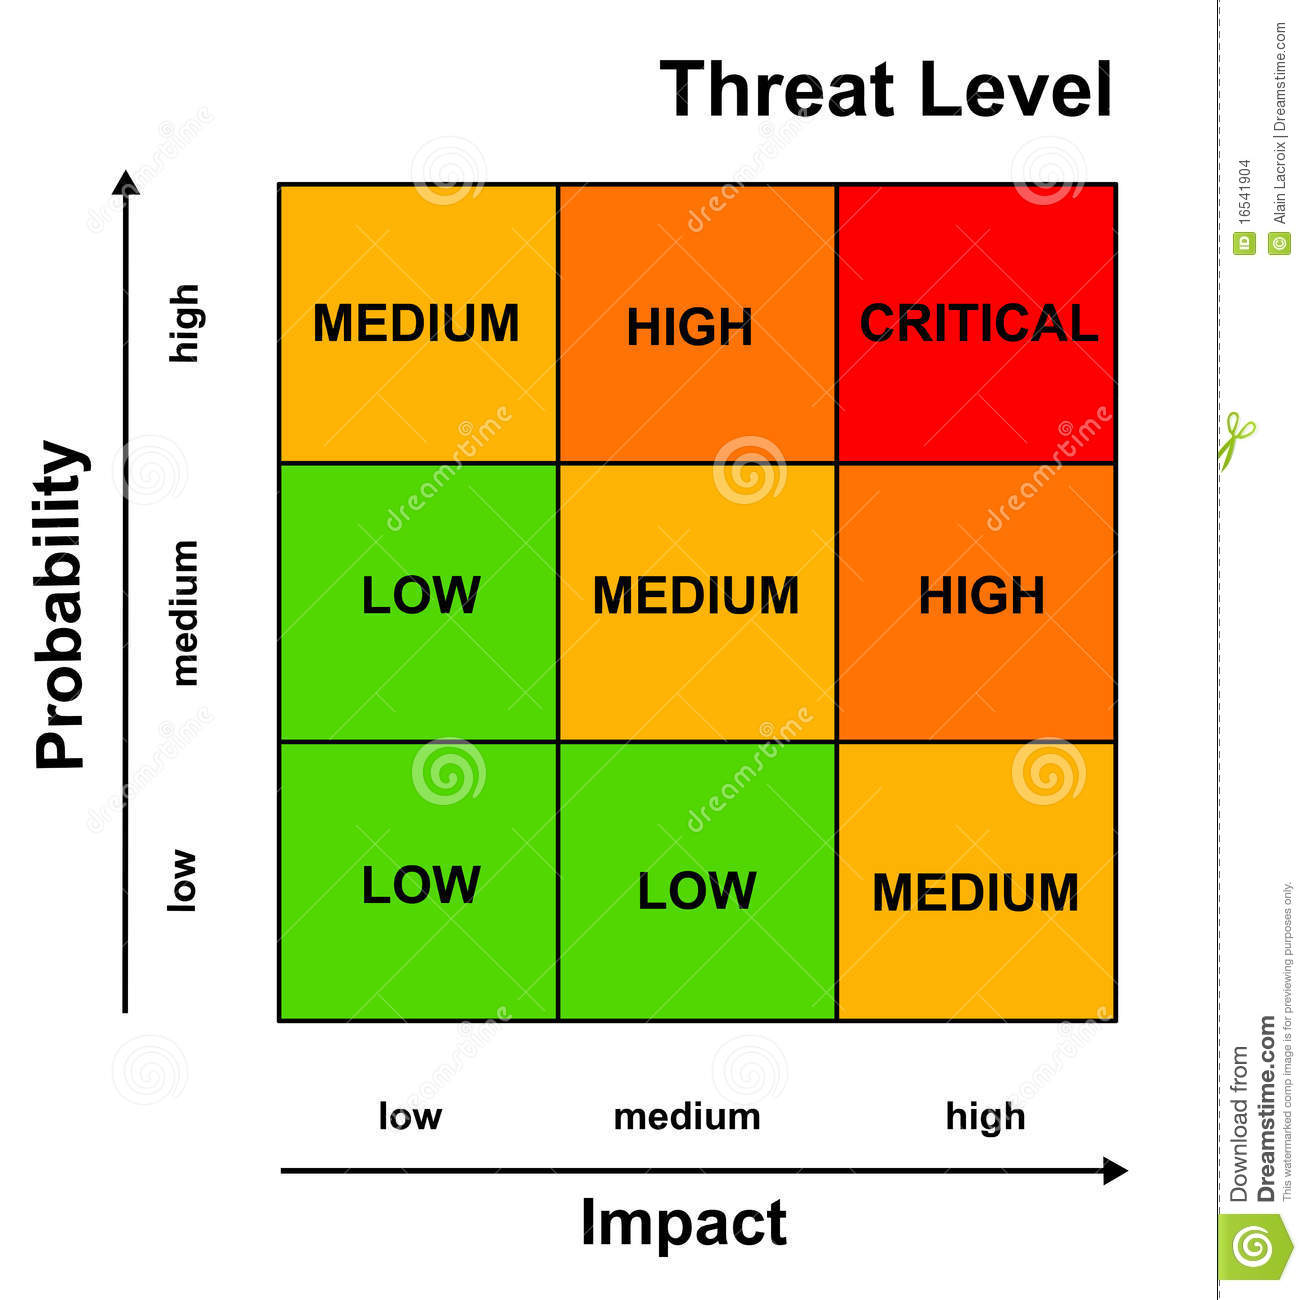 project impact diagram unlabeled muscles blank risk management stock illustration of hazard